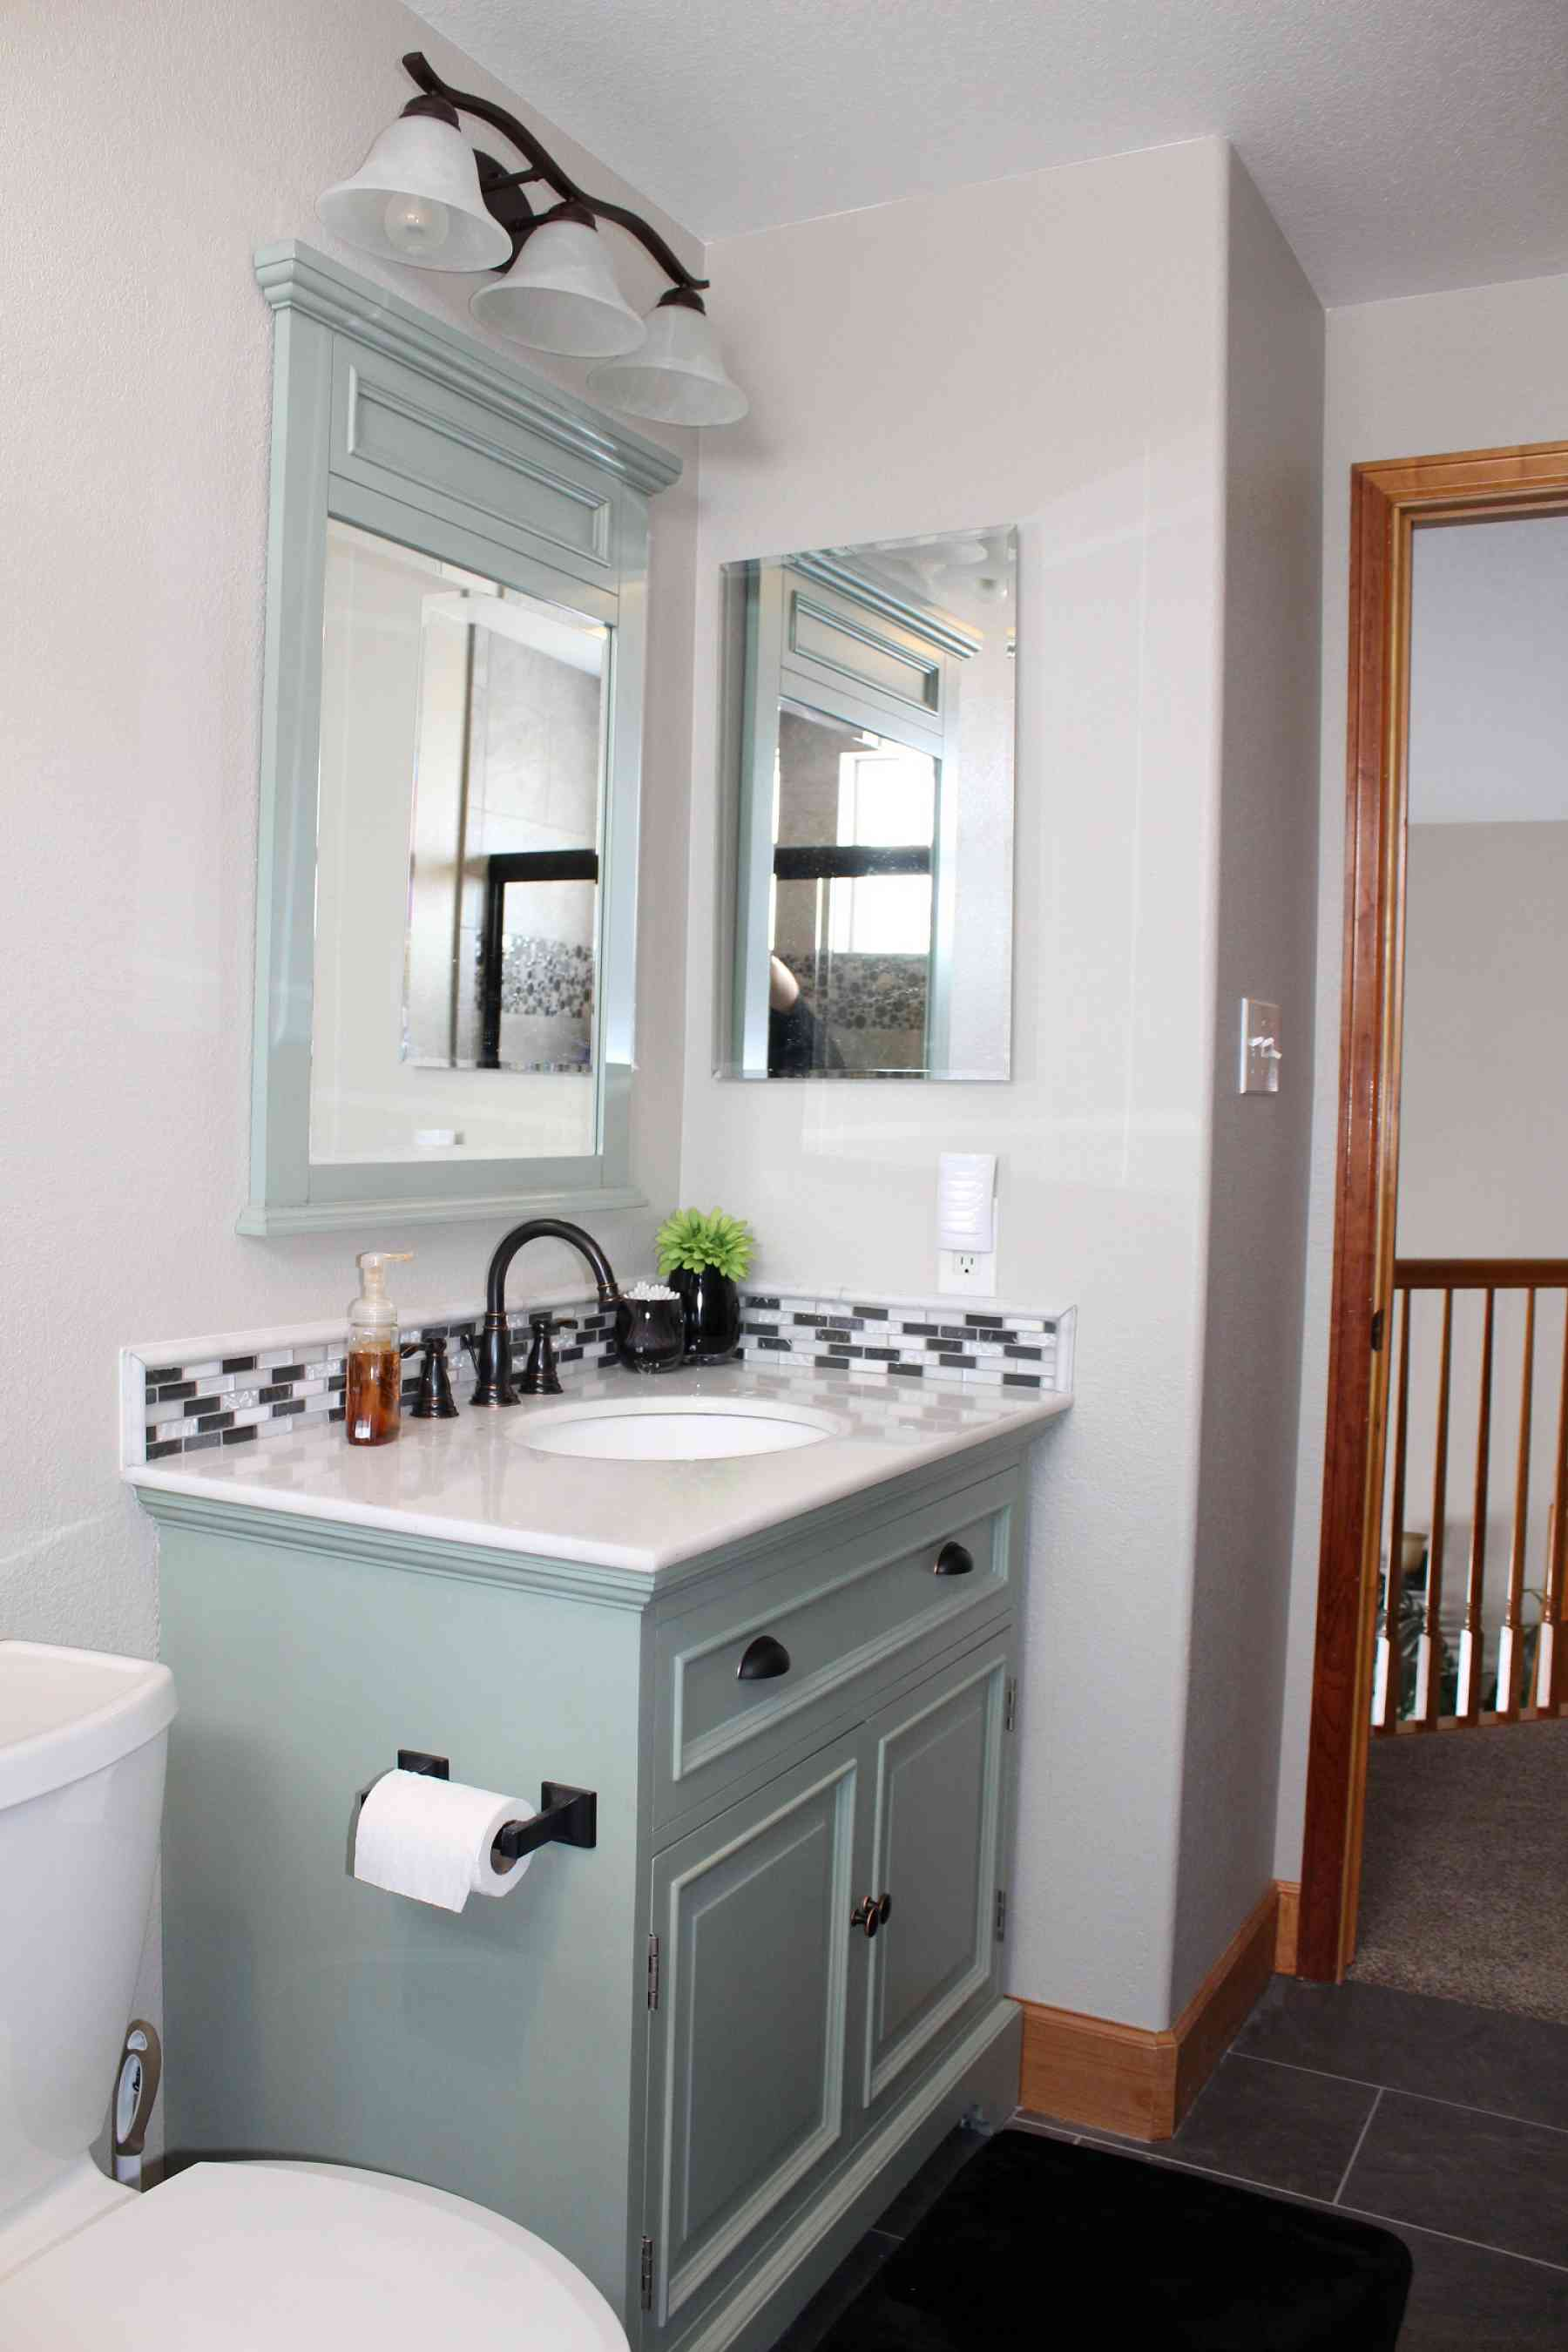 Stunning and updated vanity, backsplash, mirror and light